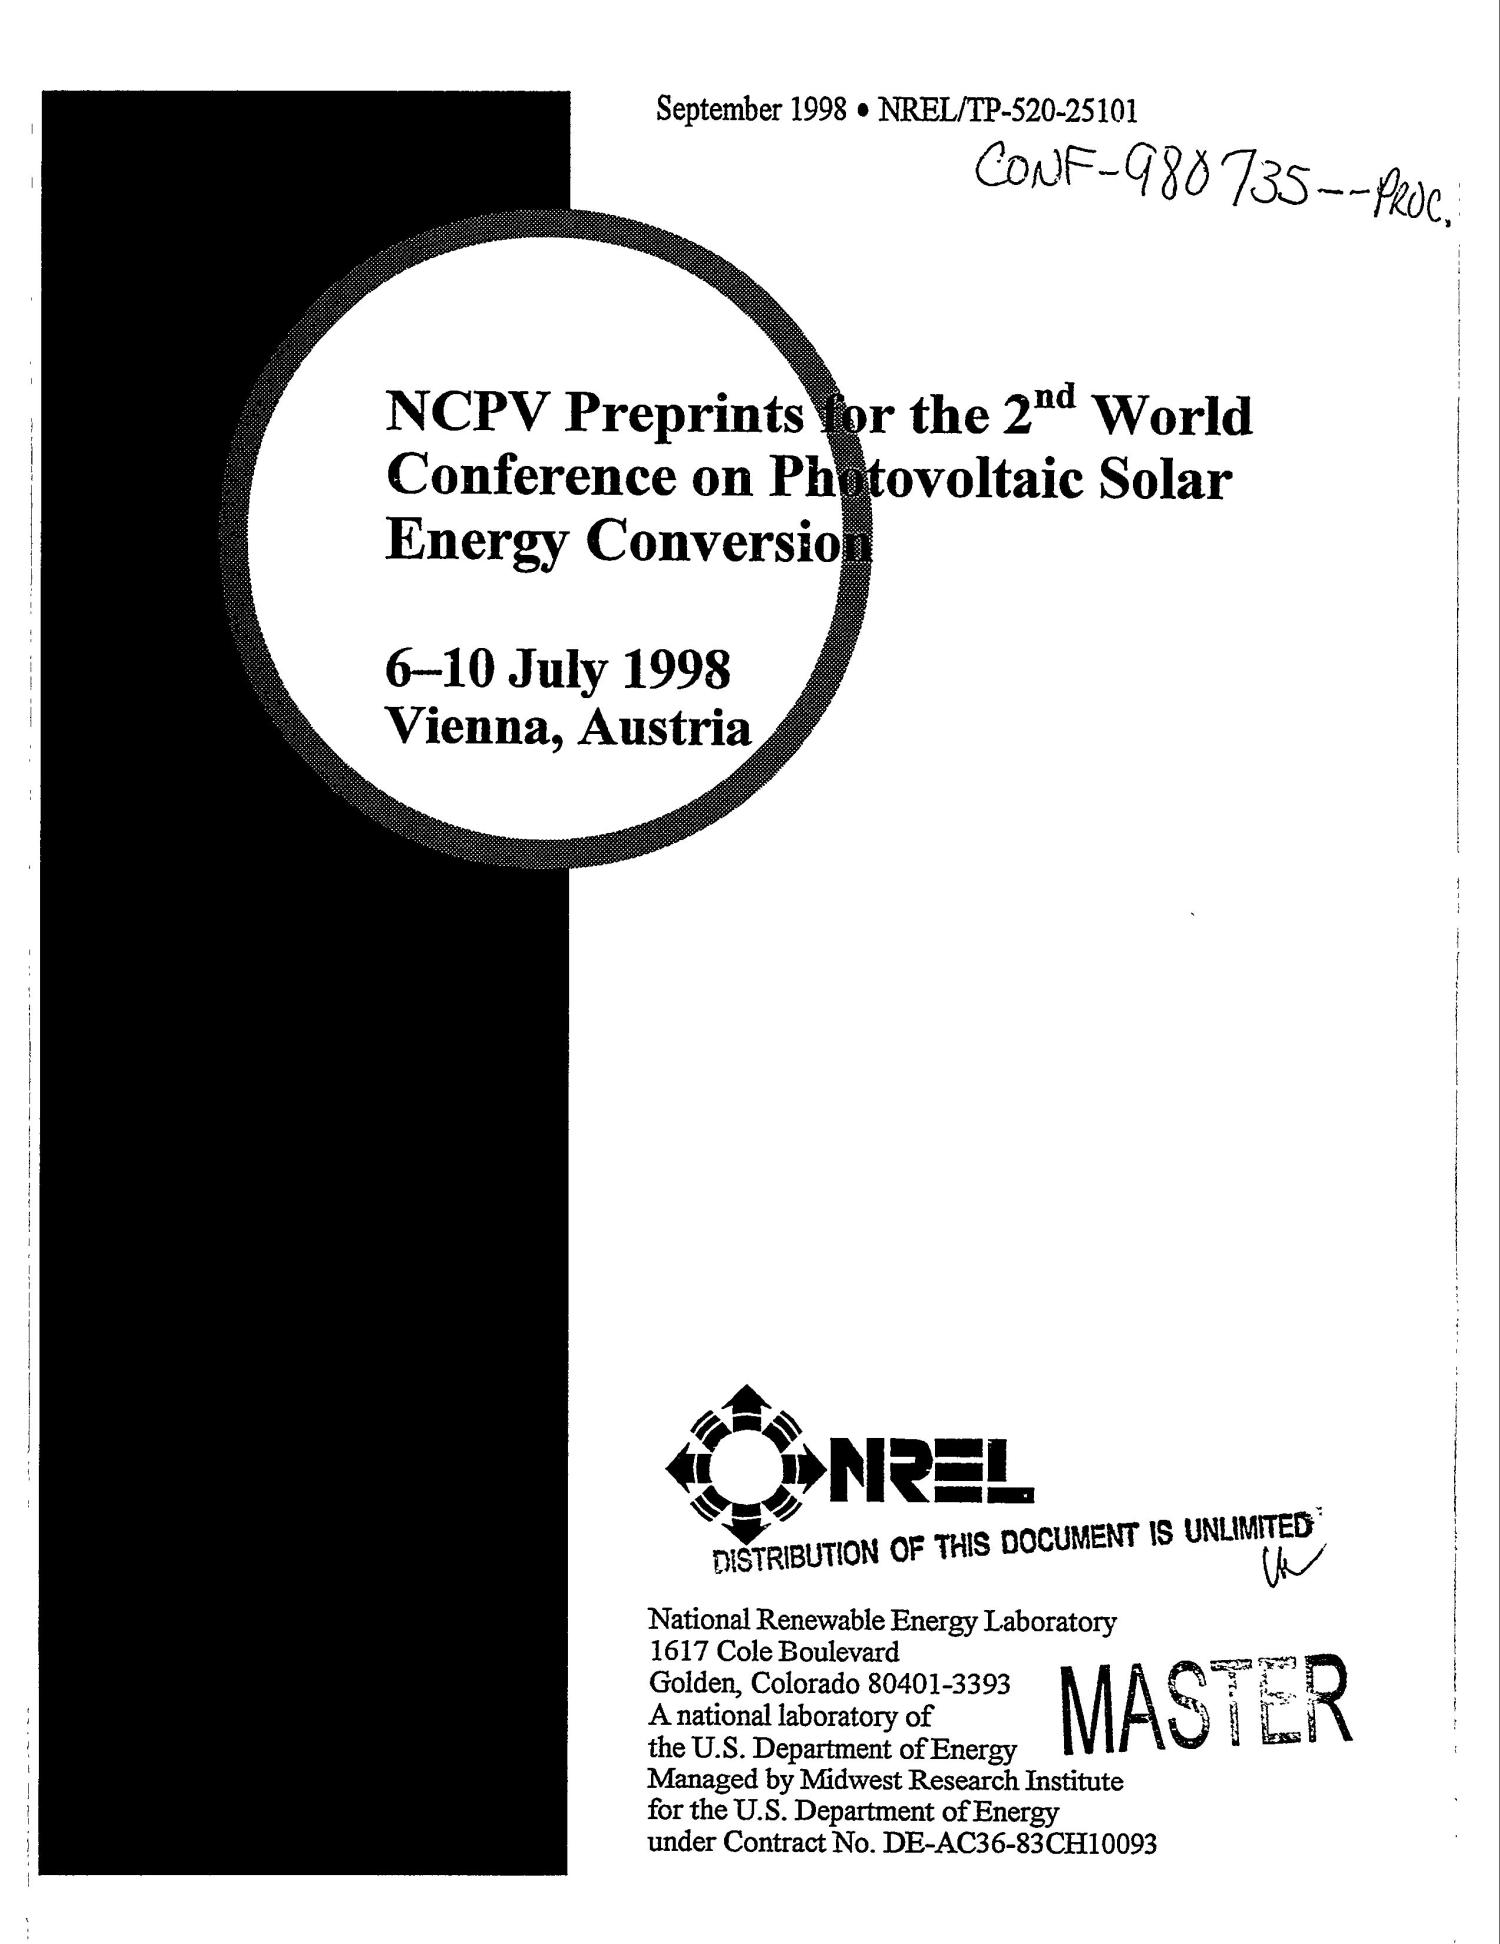 NCPV preprints for the 2. world conference on photovoltaic solar energy conversion                                                                                                      [Sequence #]: 1 of 144